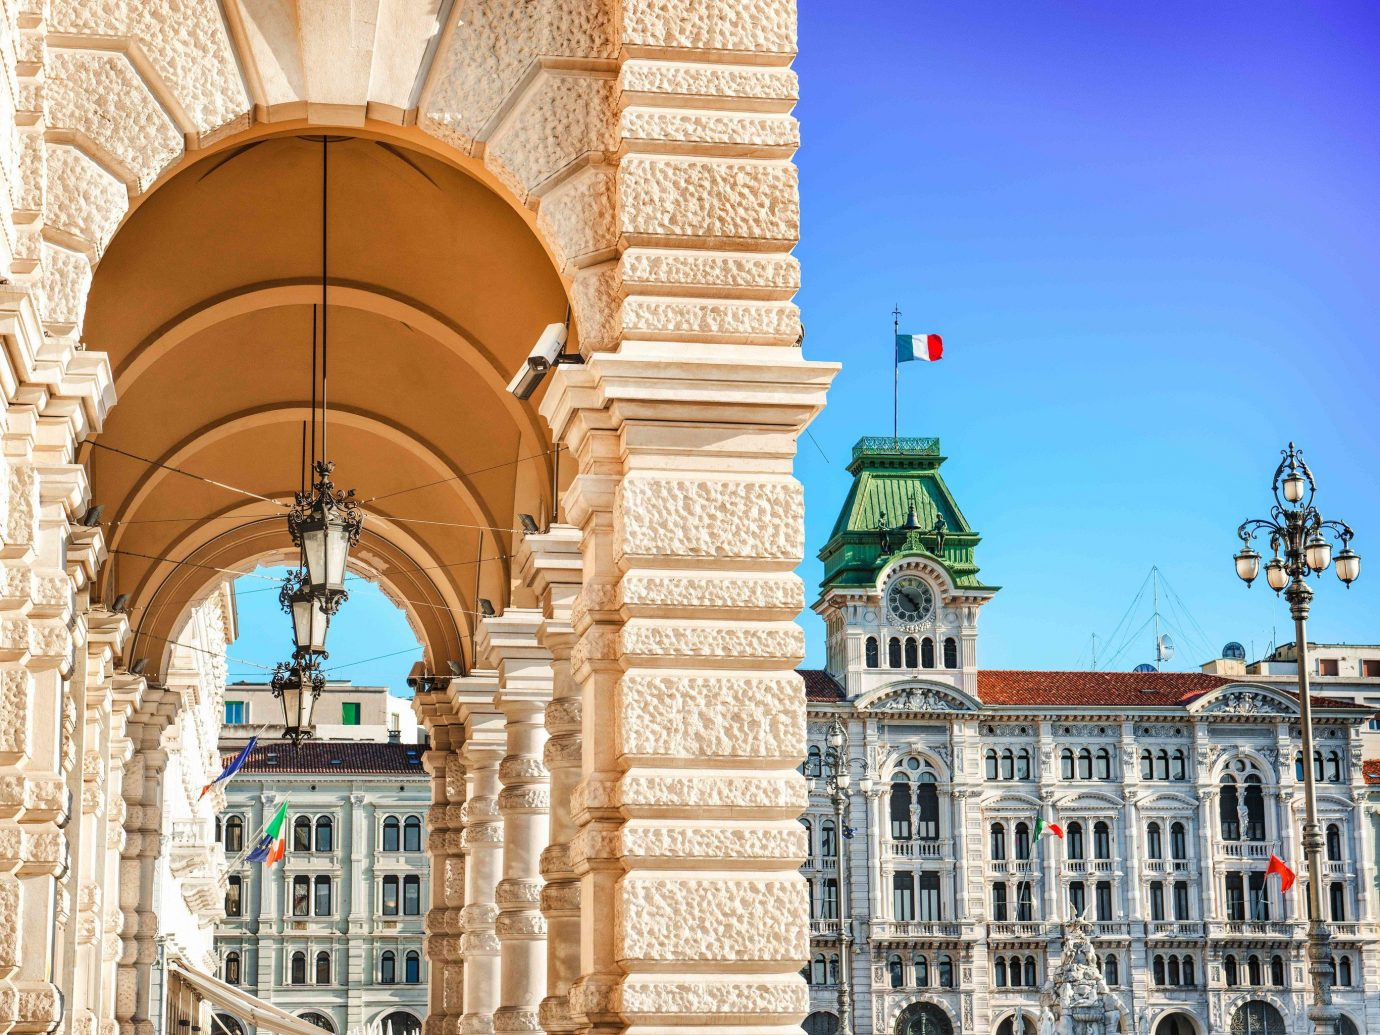 europe Italy Off-the-beaten Path Trip Ideas landmark arch building Town structure sky column tourist attraction classical architecture City facade tourism metropolis historic site window palace plaza